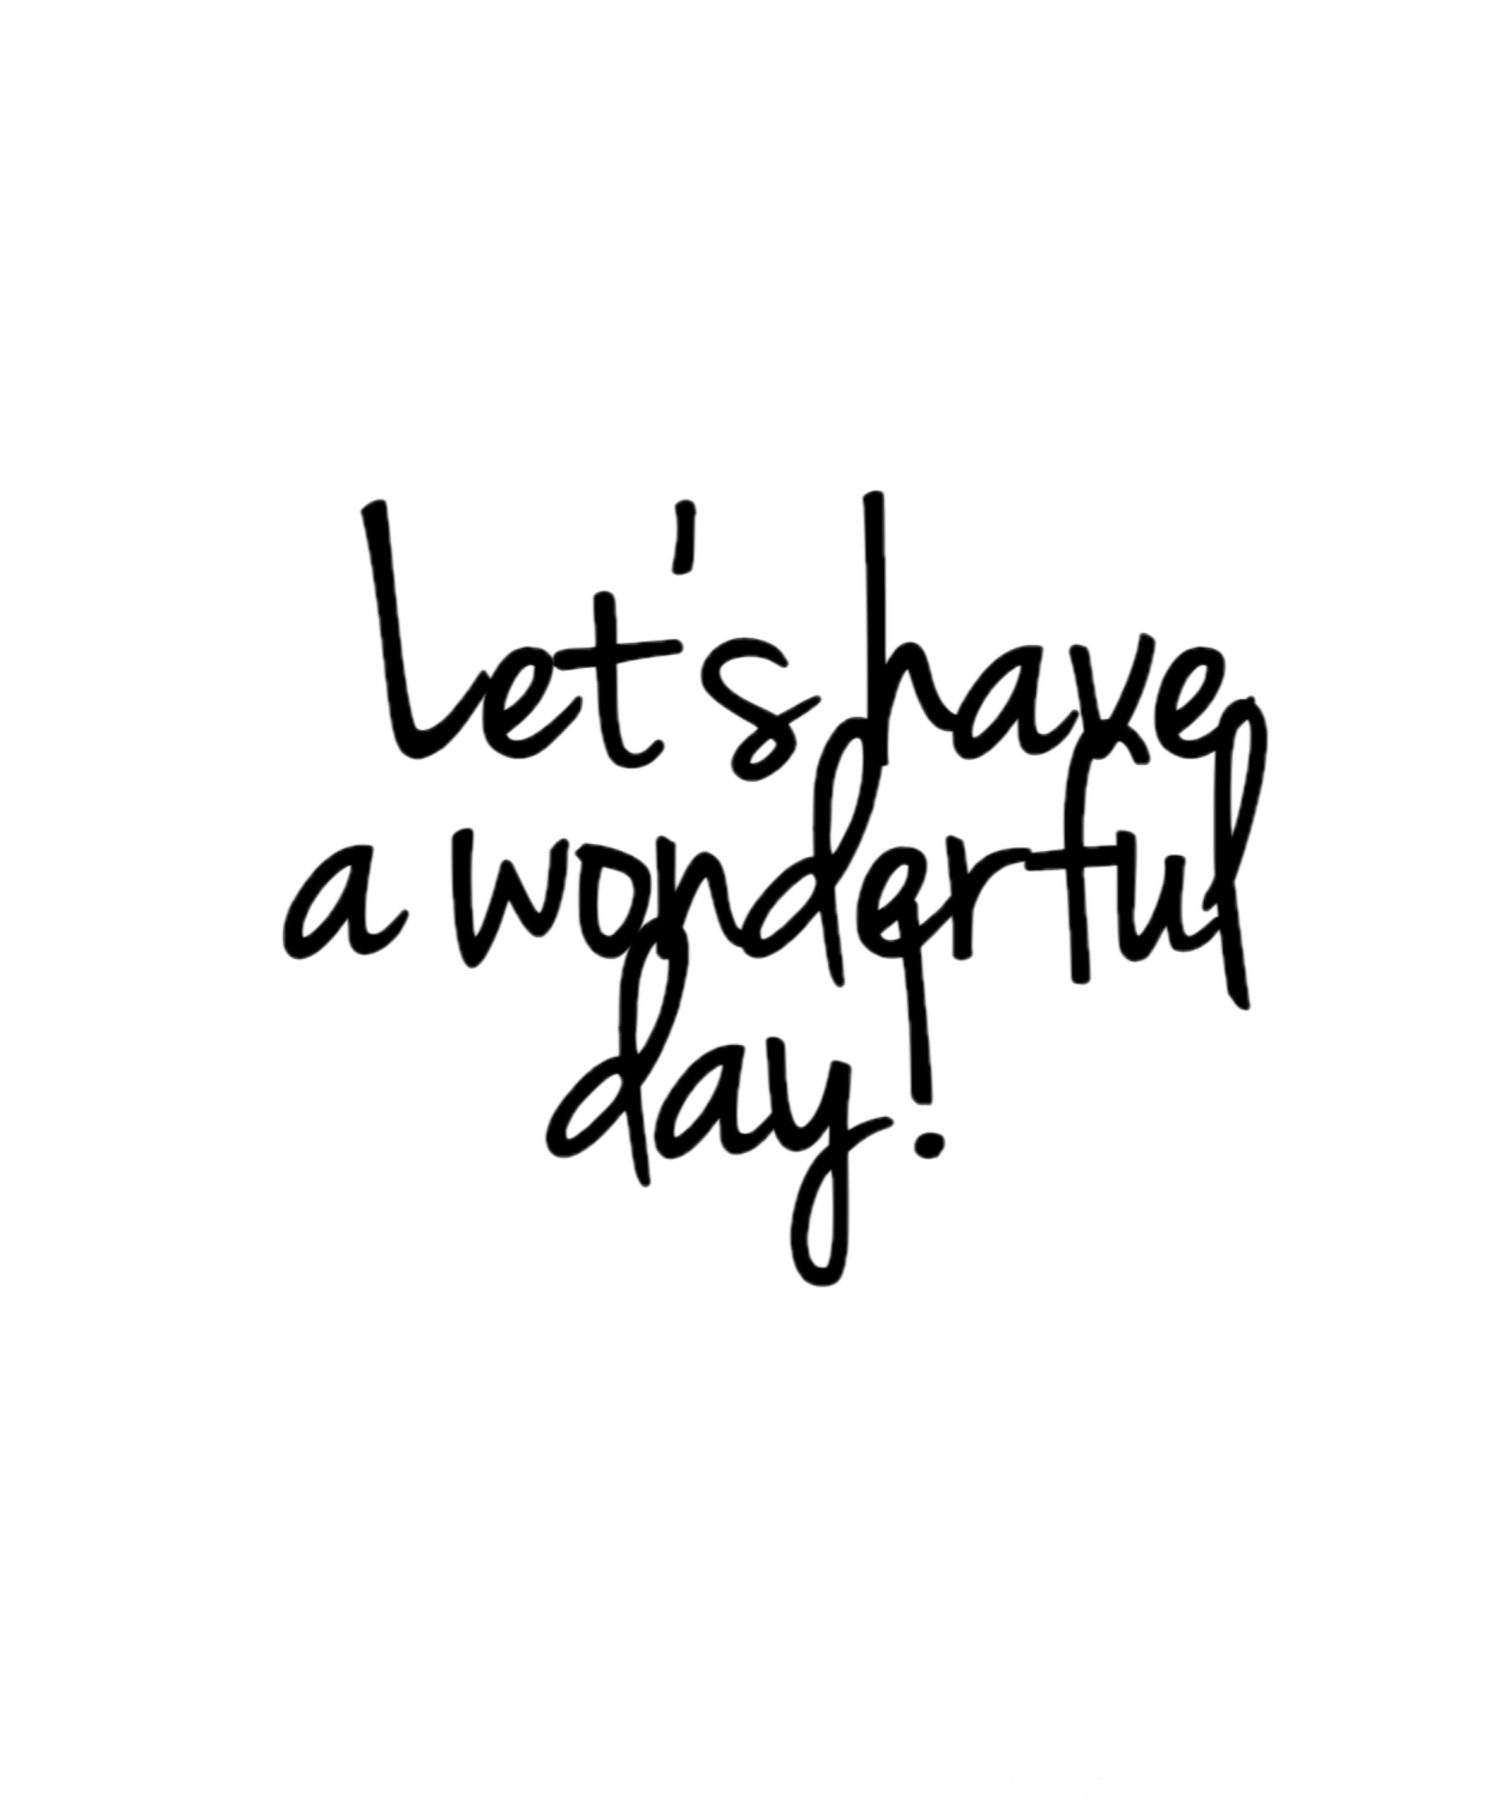 Let's have a wonderful day!